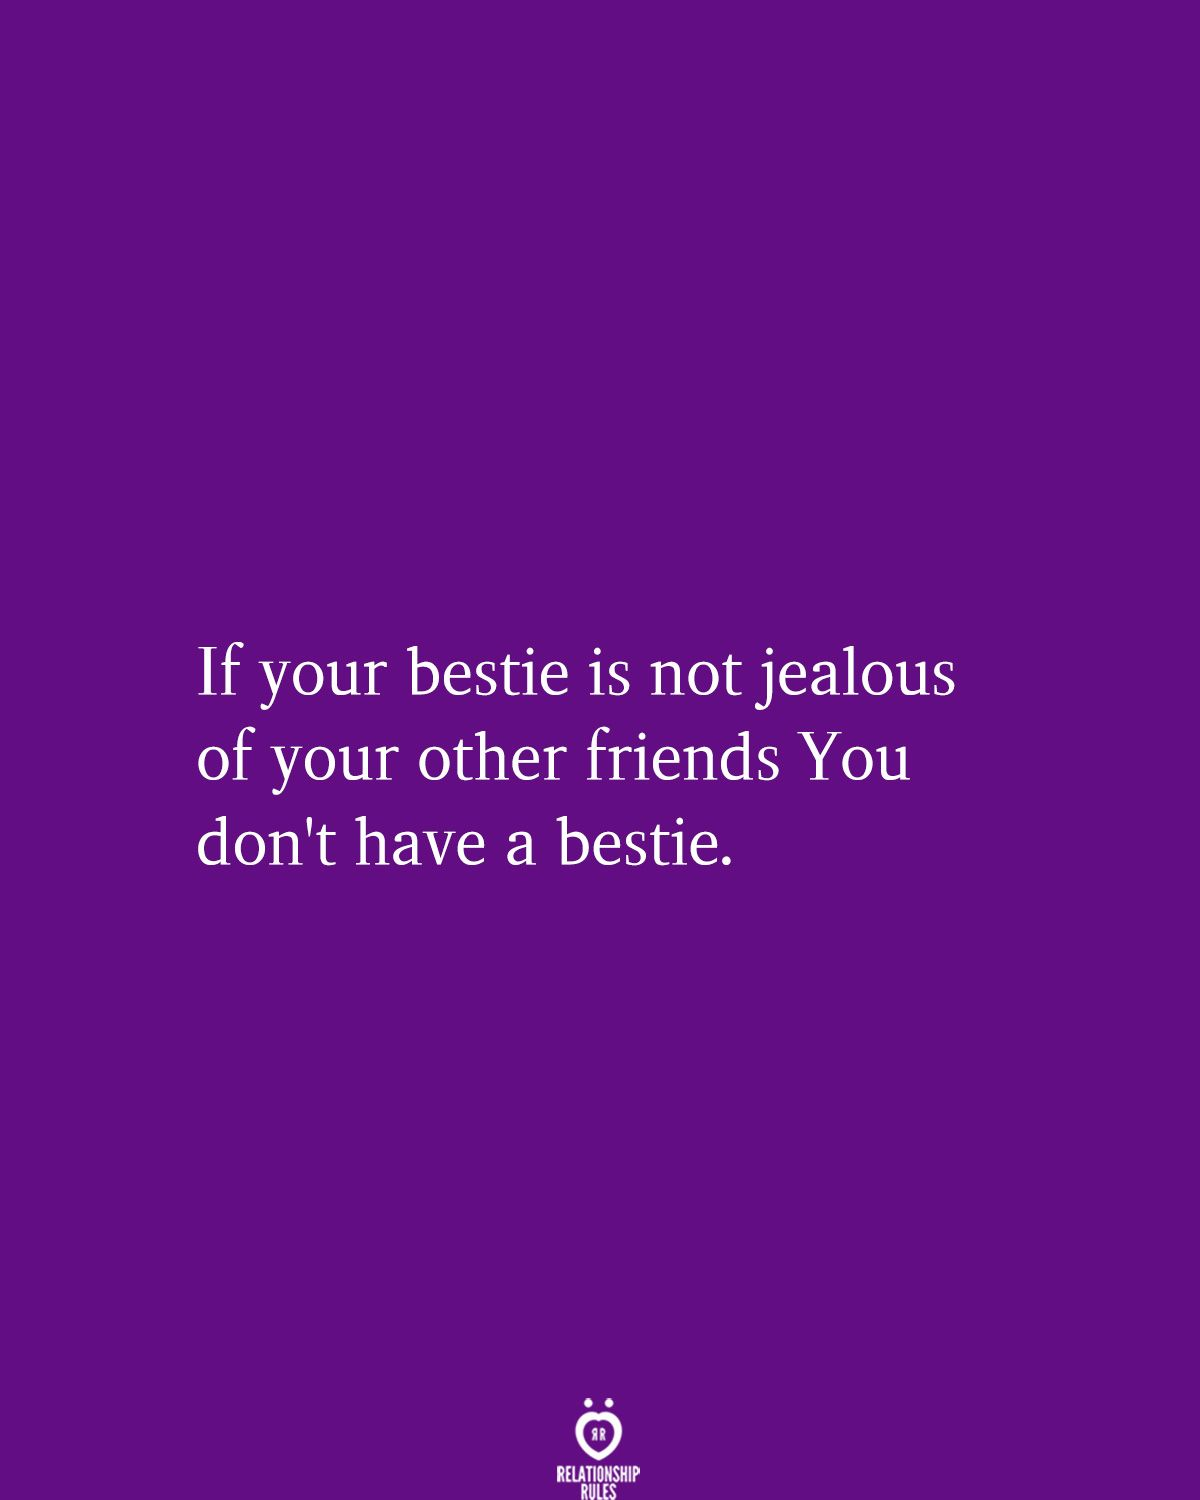 If your bestie is not jealous of your other friends You don't have a bestie.